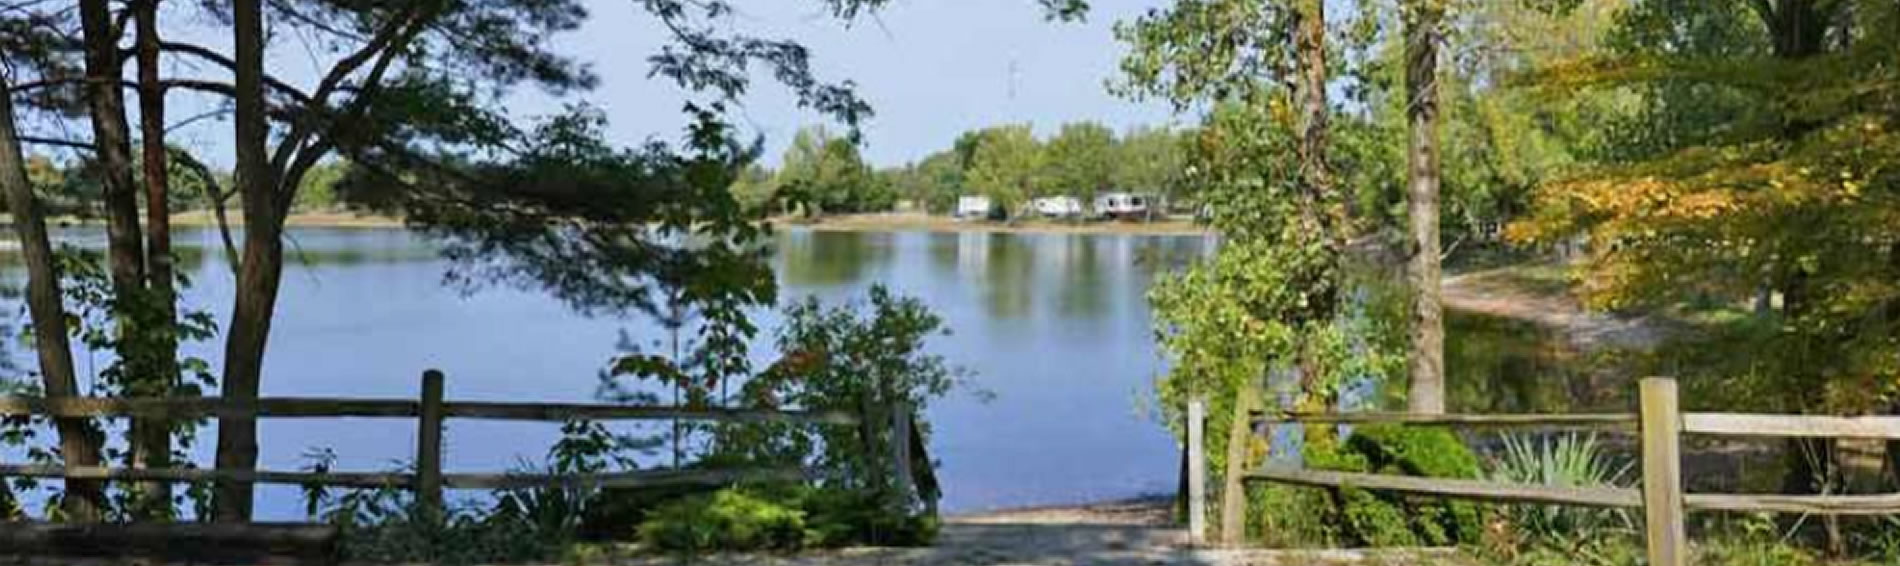 Campgrounds near Muskegon, Lake Michigan - Lake Sch-Nepp-A